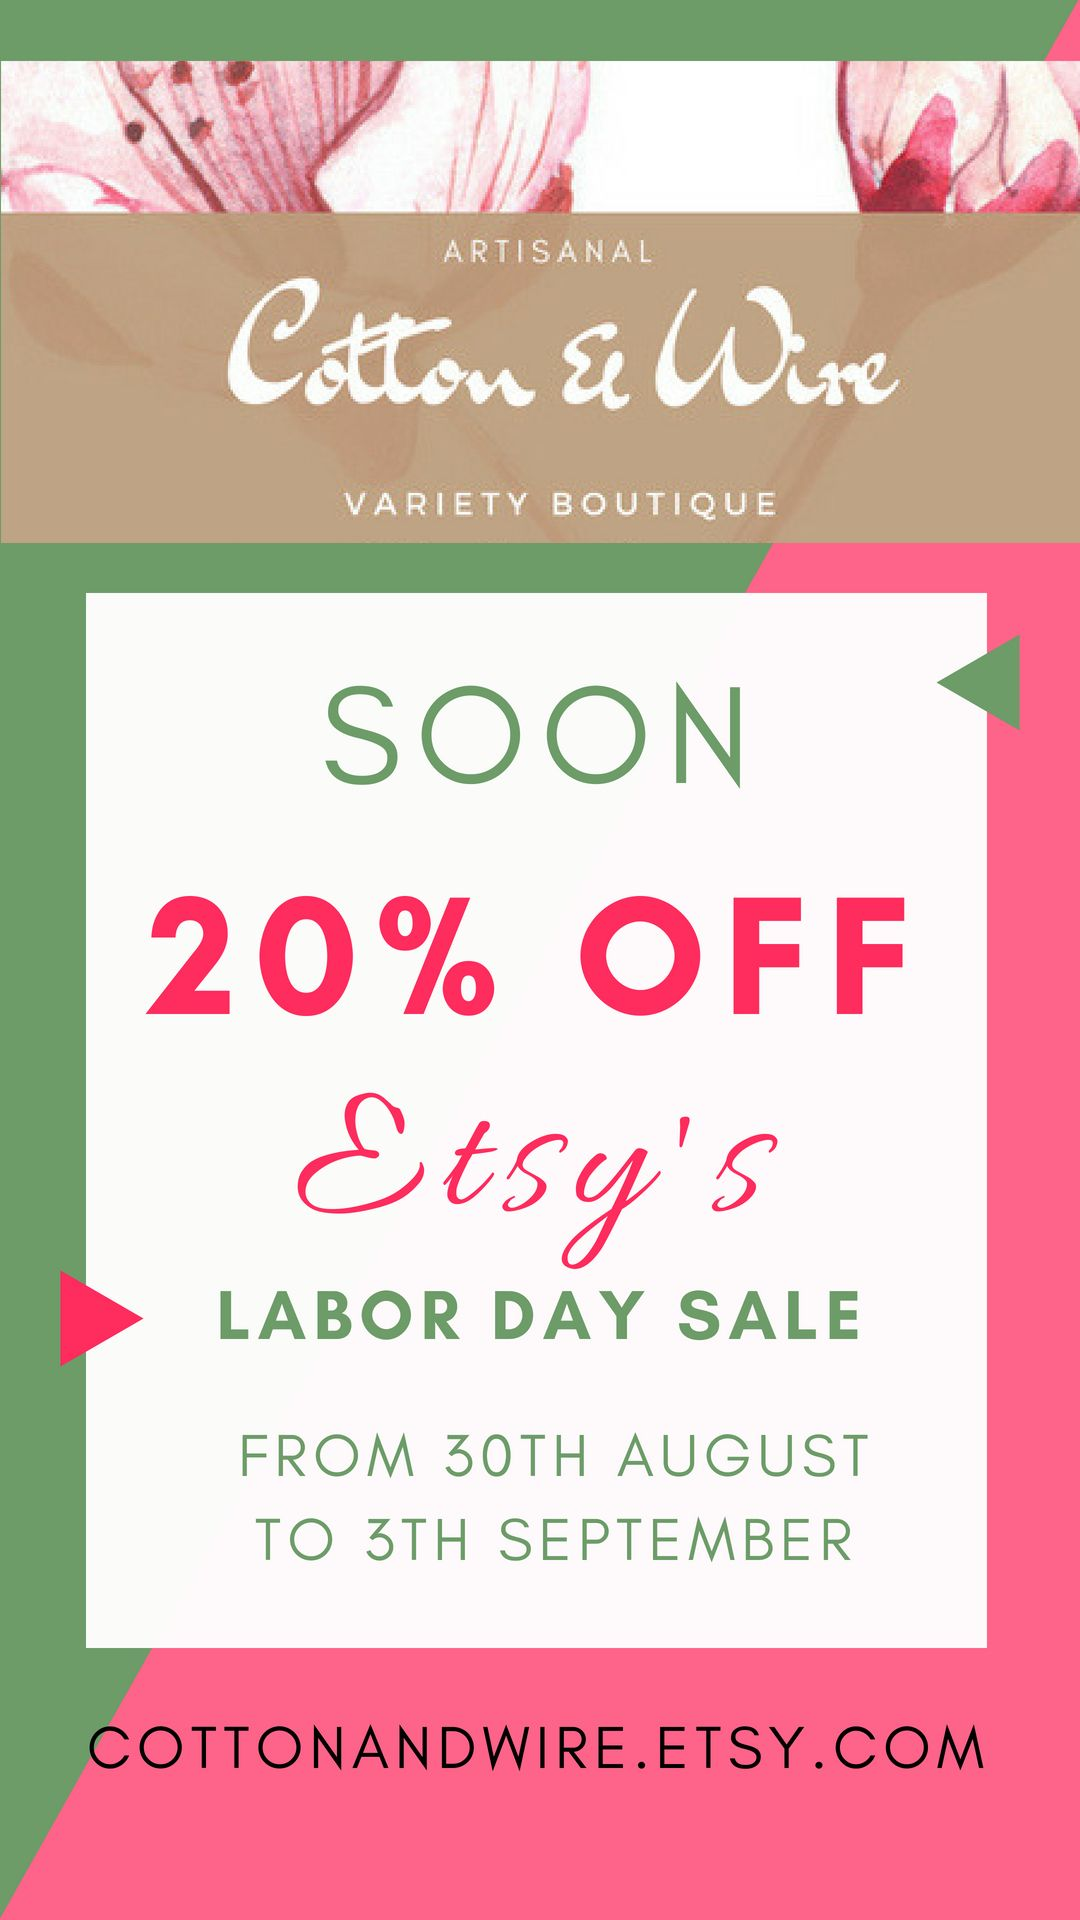 We Are Joining The Labor Day Etsy Sale From 30th August To 3rd